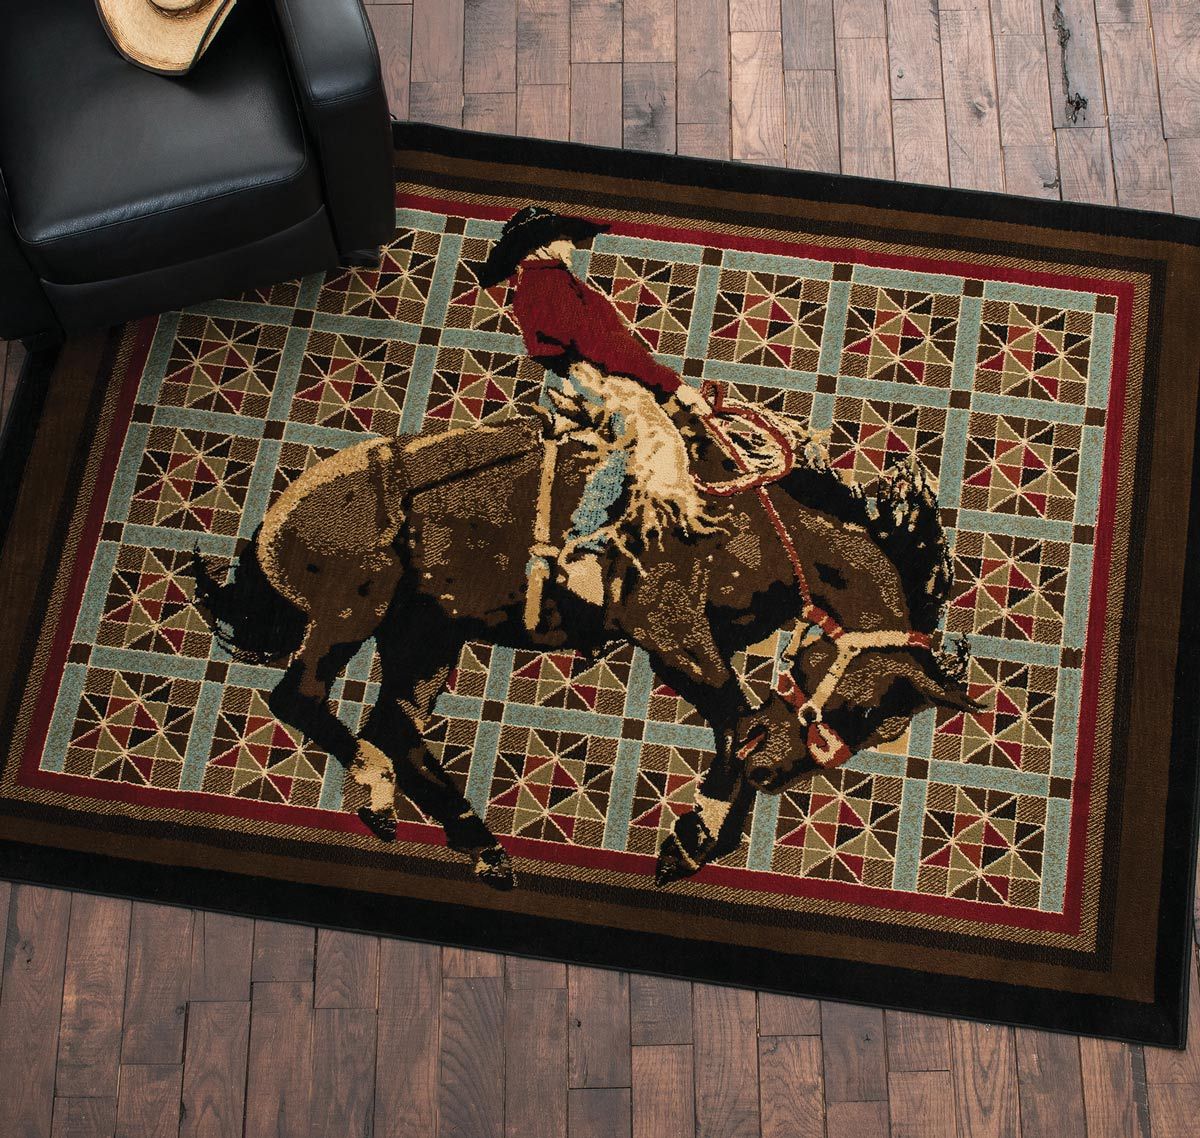 Rodeo Star Quilt Rug - 8 x 10